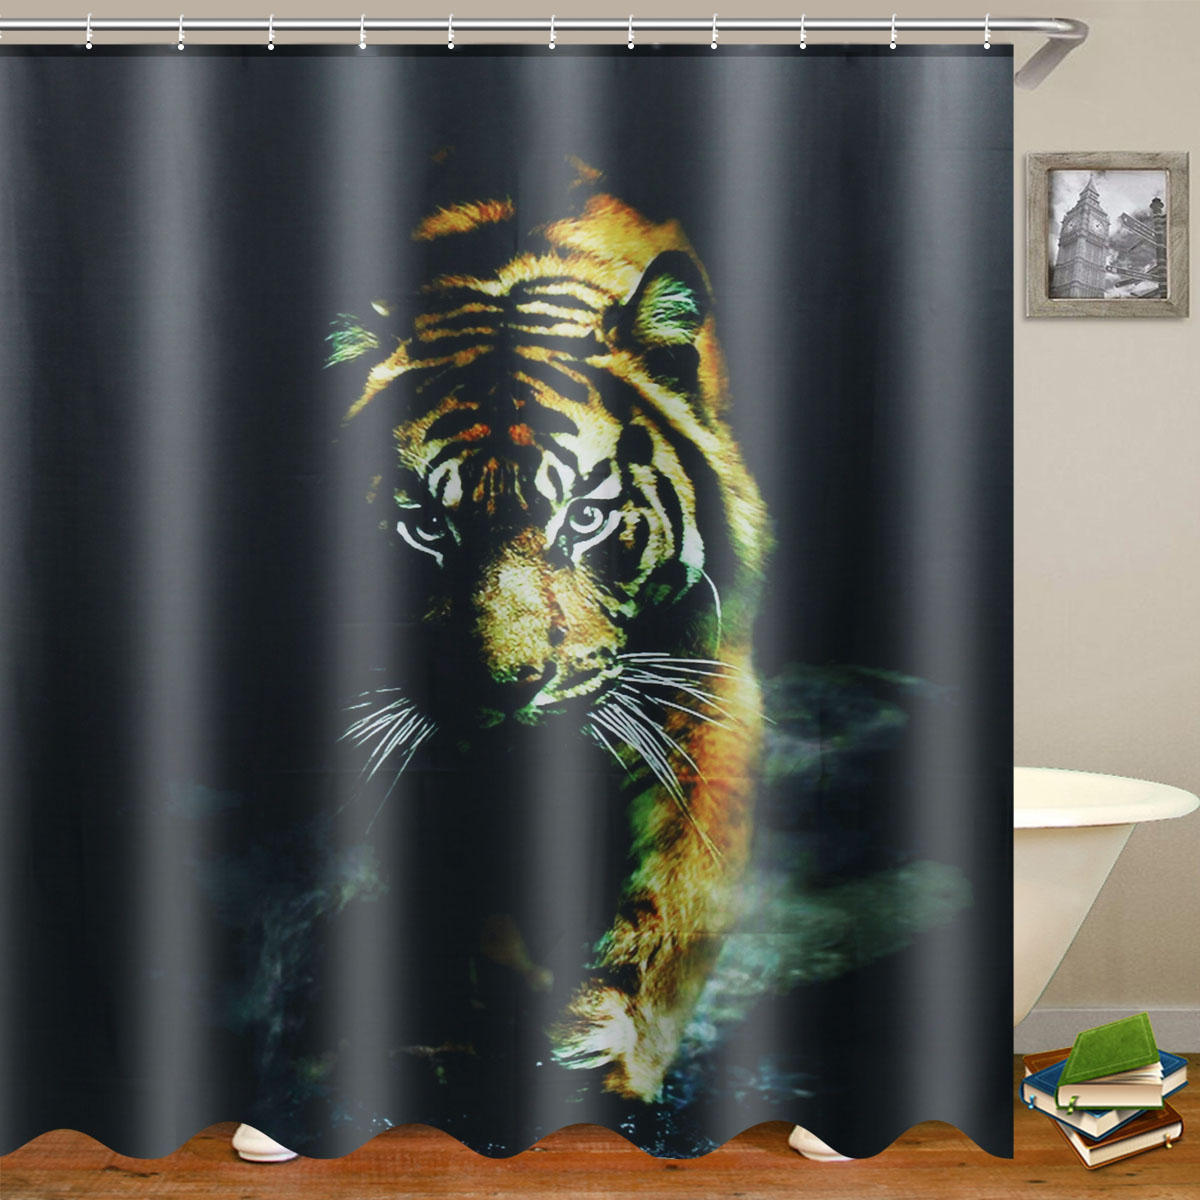 "72""X 72"" Wildlife Animal Nature Decor Tiger Bathroom Decor Shower Curtain with Plastic Shower Hooks"